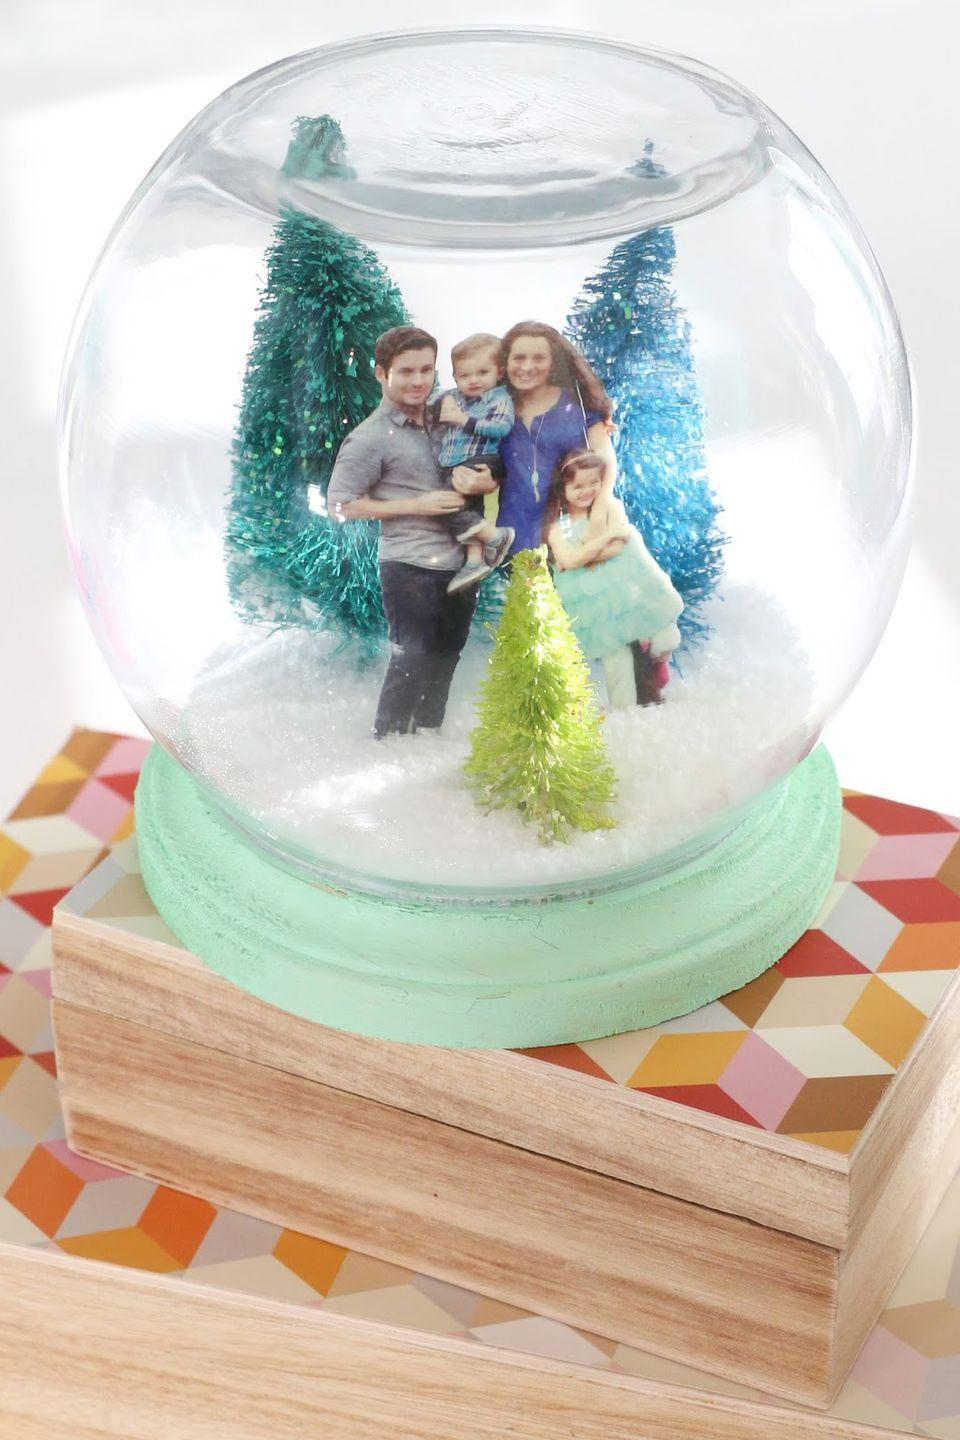 """<p>The only thing we love more than a pretty snow globe is a pretty <em>personalized</em> snow globe. Customize yours with a family portrait and colorful bottle brush trees. </p><p><strong>Get the tutorial <a href=""""https://akailochiclife.com/2015/12/craft-it-family-portrait-snow-globe.html"""" rel=""""nofollow noopener"""" target=""""_blank"""" data-ylk=""""slk:A Kailo Chic Life"""" class=""""link rapid-noclick-resp"""">A Kailo Chic Life</a>.</strong></p><p><strong><a class=""""link rapid-noclick-resp"""" href=""""https://www.amazon.com/KUUQA-Plastic-Ornaments-Tabletop-Decoration/dp/B077D43FZC/?tag=syn-yahoo-20&ascsubtag=%5Bartid%7C10050.g.23489557%5Bsrc%7Cyahoo-us"""" rel=""""nofollow noopener"""" target=""""_blank"""" data-ylk=""""slk:SHOP BOTTLE BRUSH TREES"""">SHOP BOTTLE BRUSH TREES</a><br></strong></p>"""